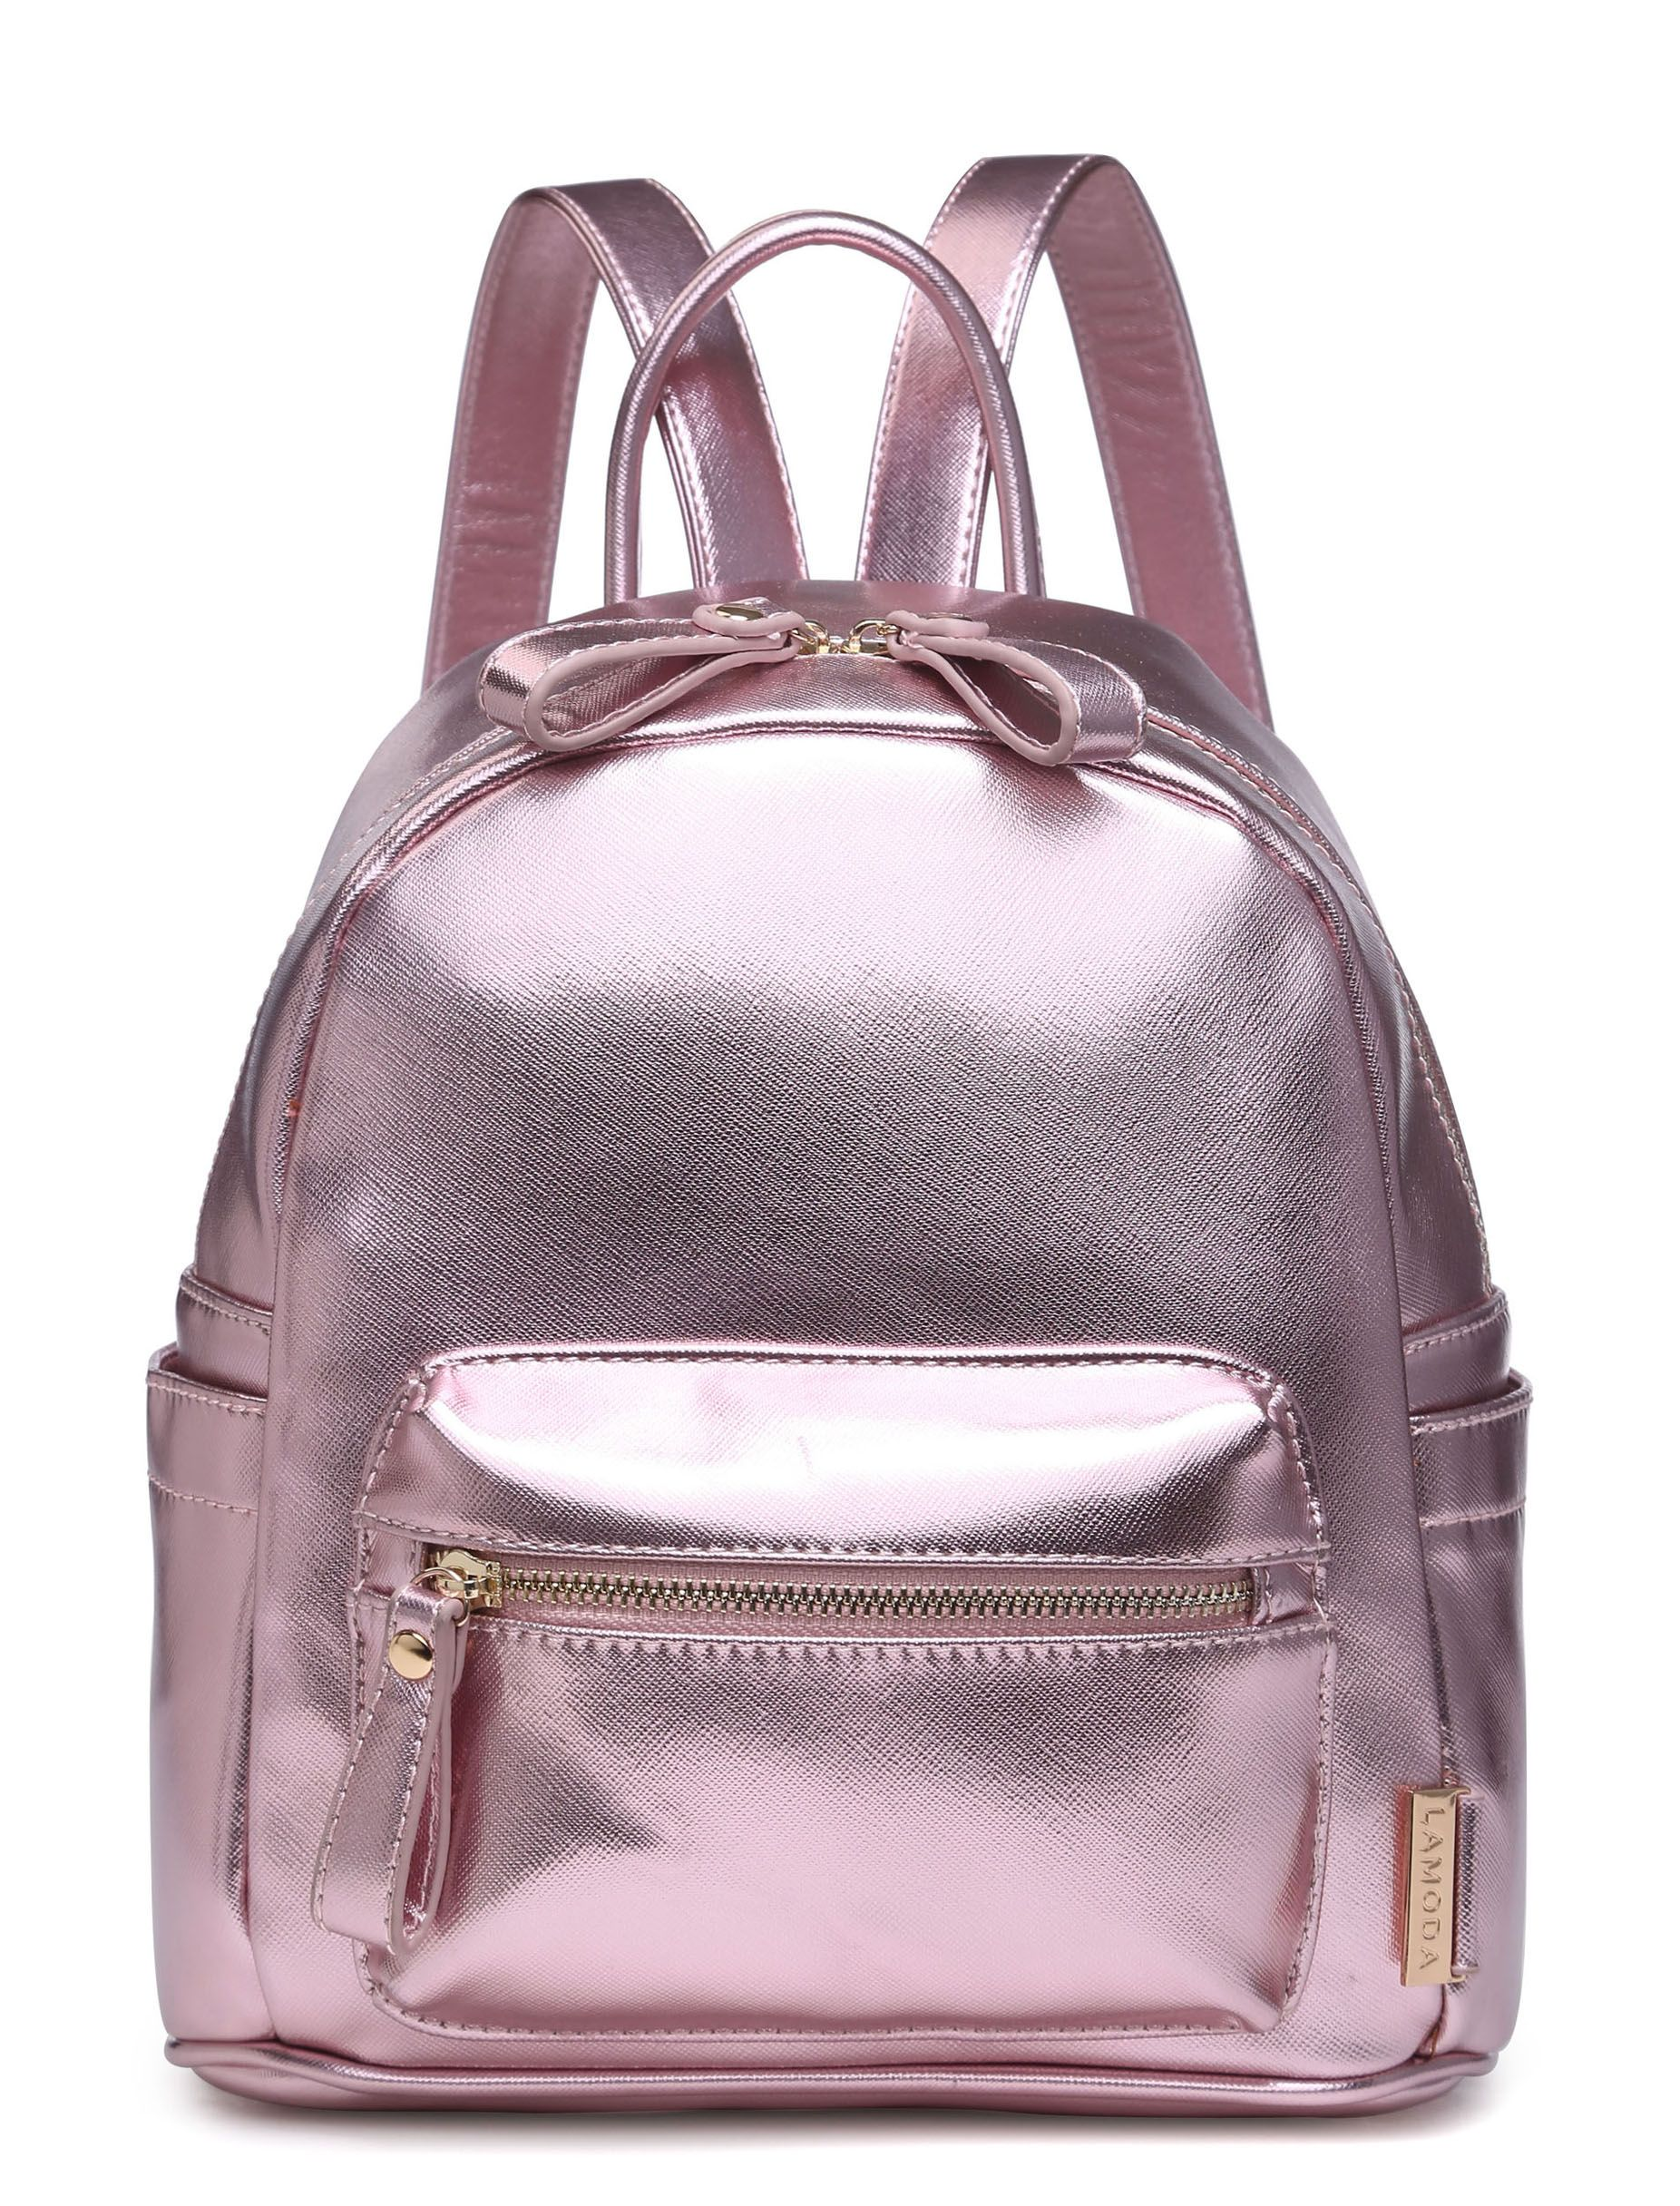 Throw some rays with our metallic SWEETEST TABOO rose gold backpack. Keep reinin' cuties!○ Metallic faux leather backpack○ High quality textured faux leather- 100% polyurethane, 100% polyester lining○ Adjustable straps○ Fully lined with inner sections○ Zip fastening closure with exterior zip pocket○ Gold hardware○ Measurements : H:27 x D:13 x W:24 cm